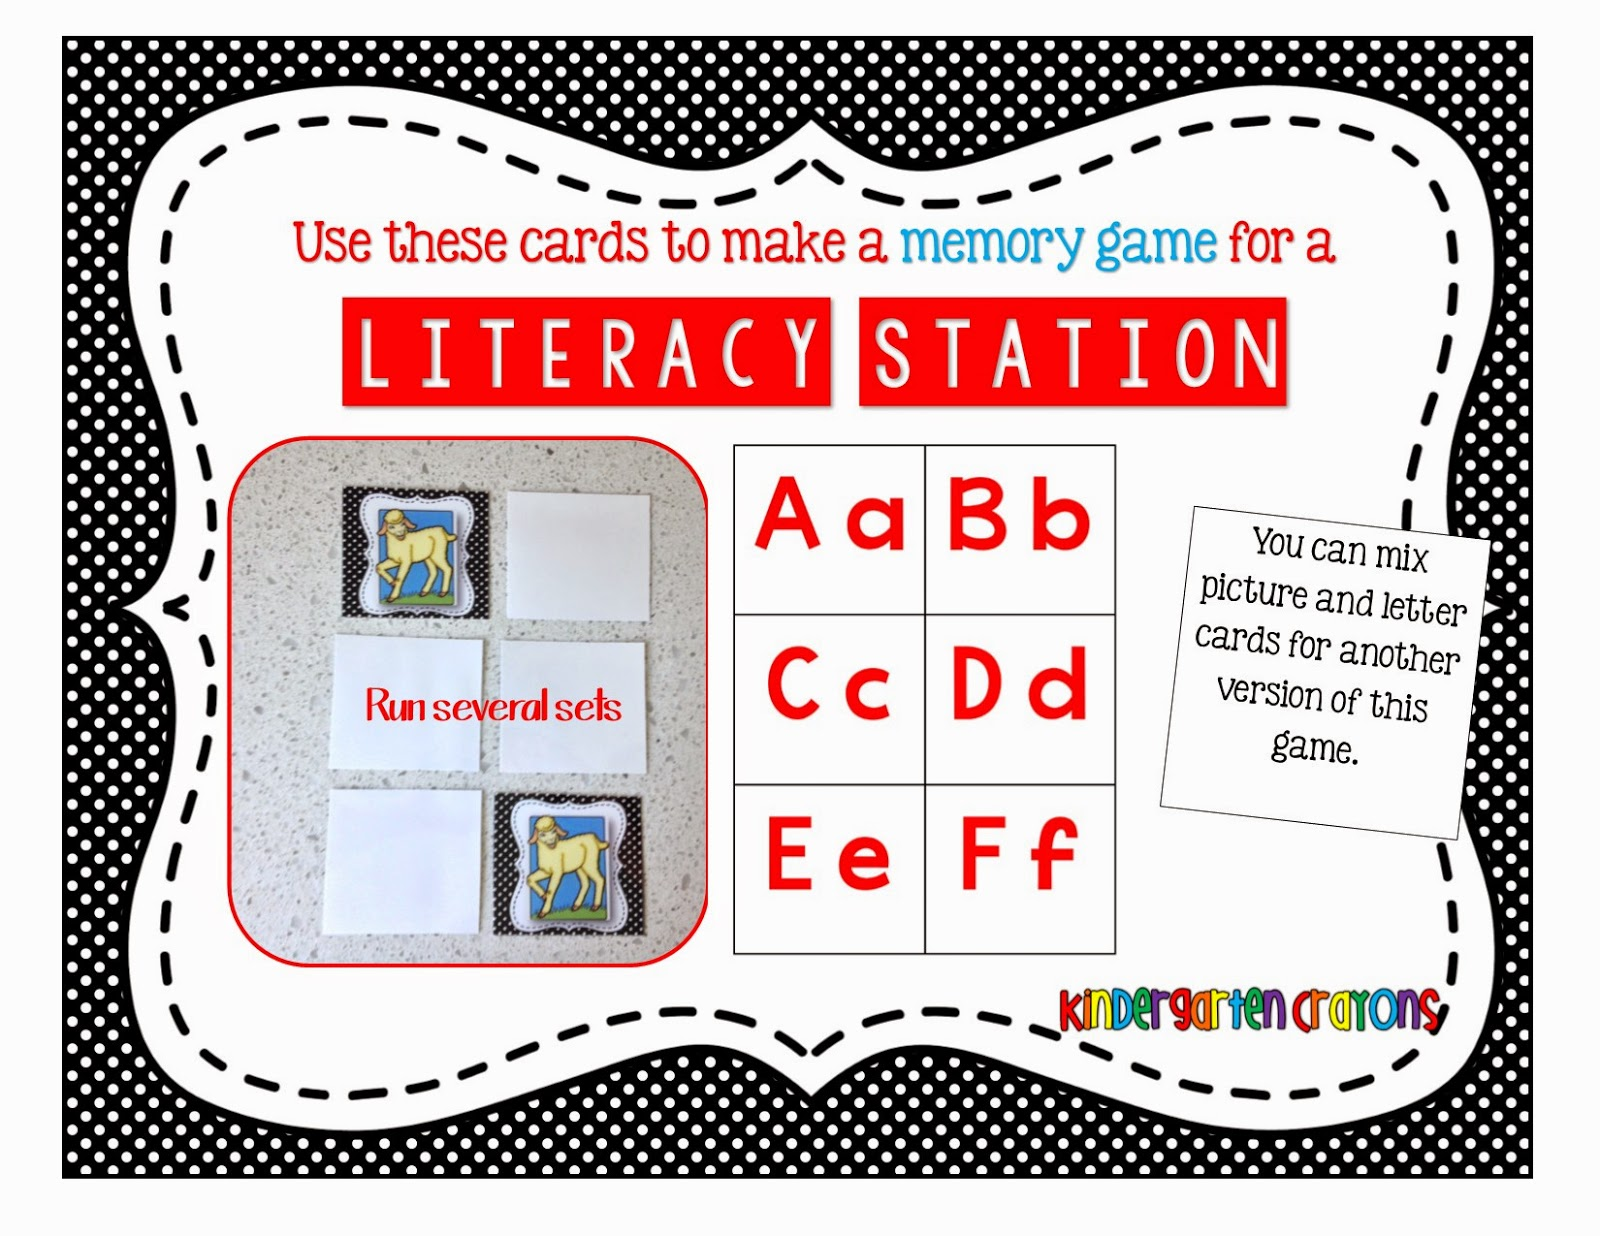 Worksheet Teaching Letter Sounds Kindergarten kindergarten crayons teaching letter sounds back to school freebie of the year most us like do word work with student names and these cards provide perfect opportunity introd